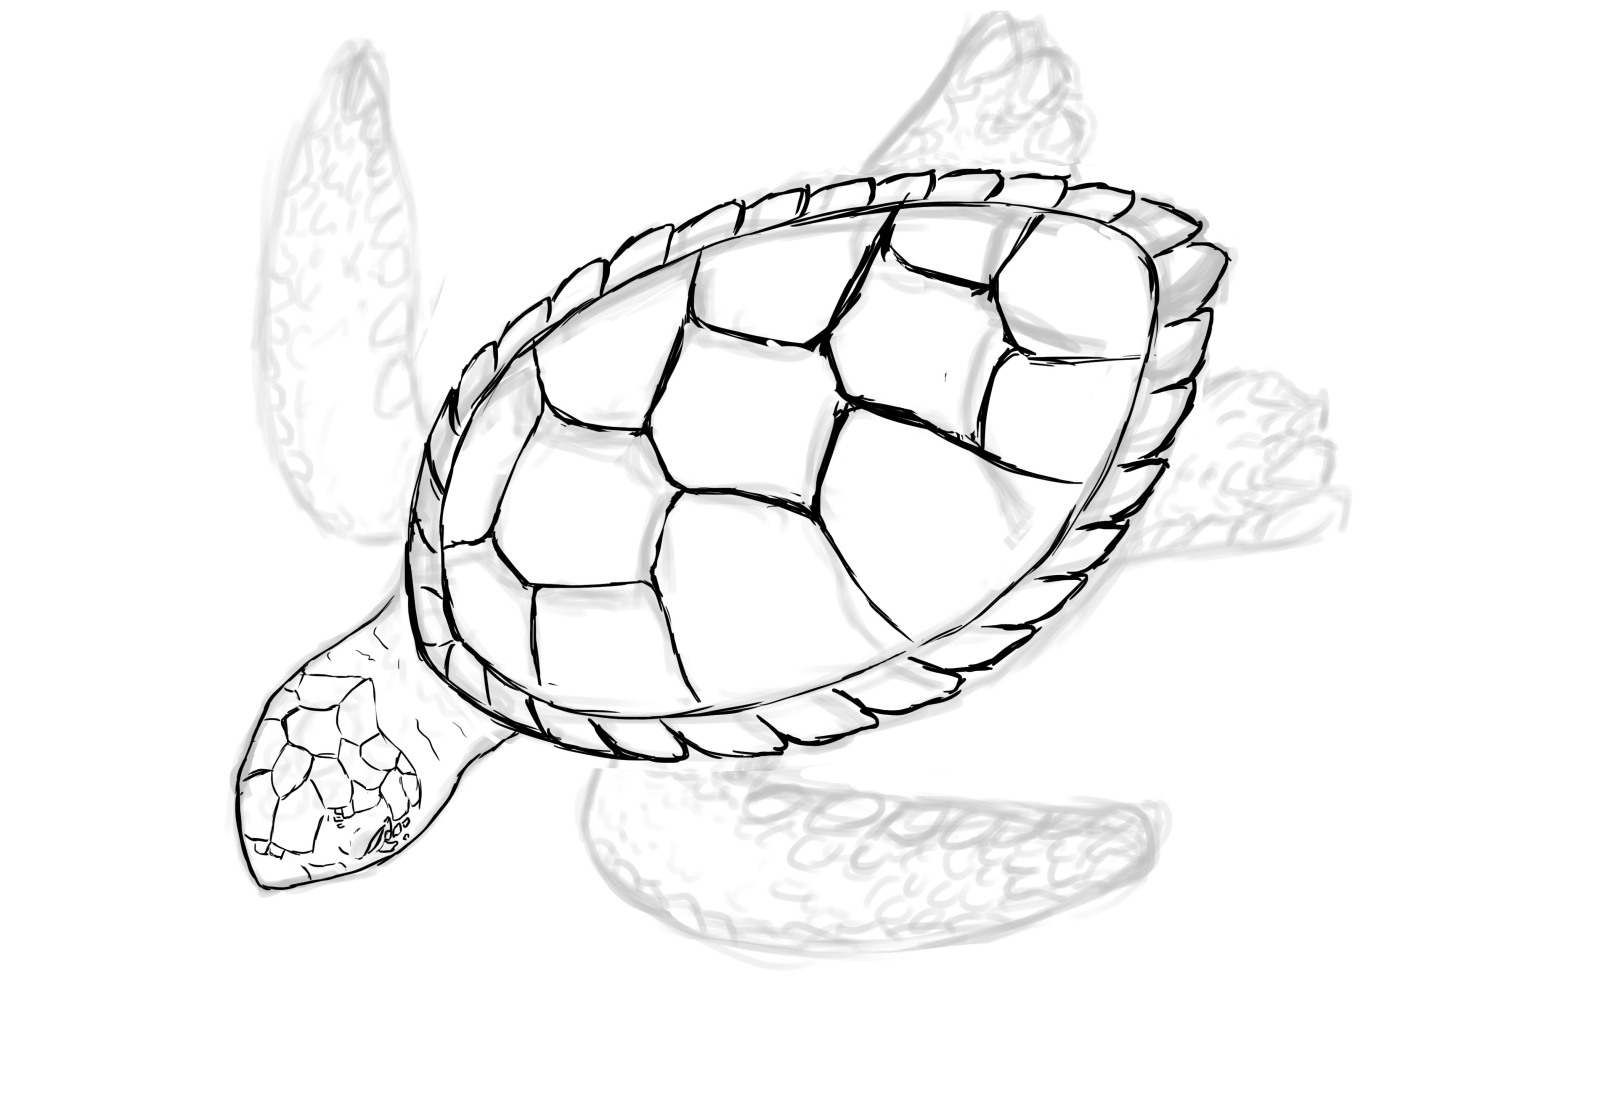 1599x1110 Images For Gt Baby Turtle Sketch Sea Turtles Turtle